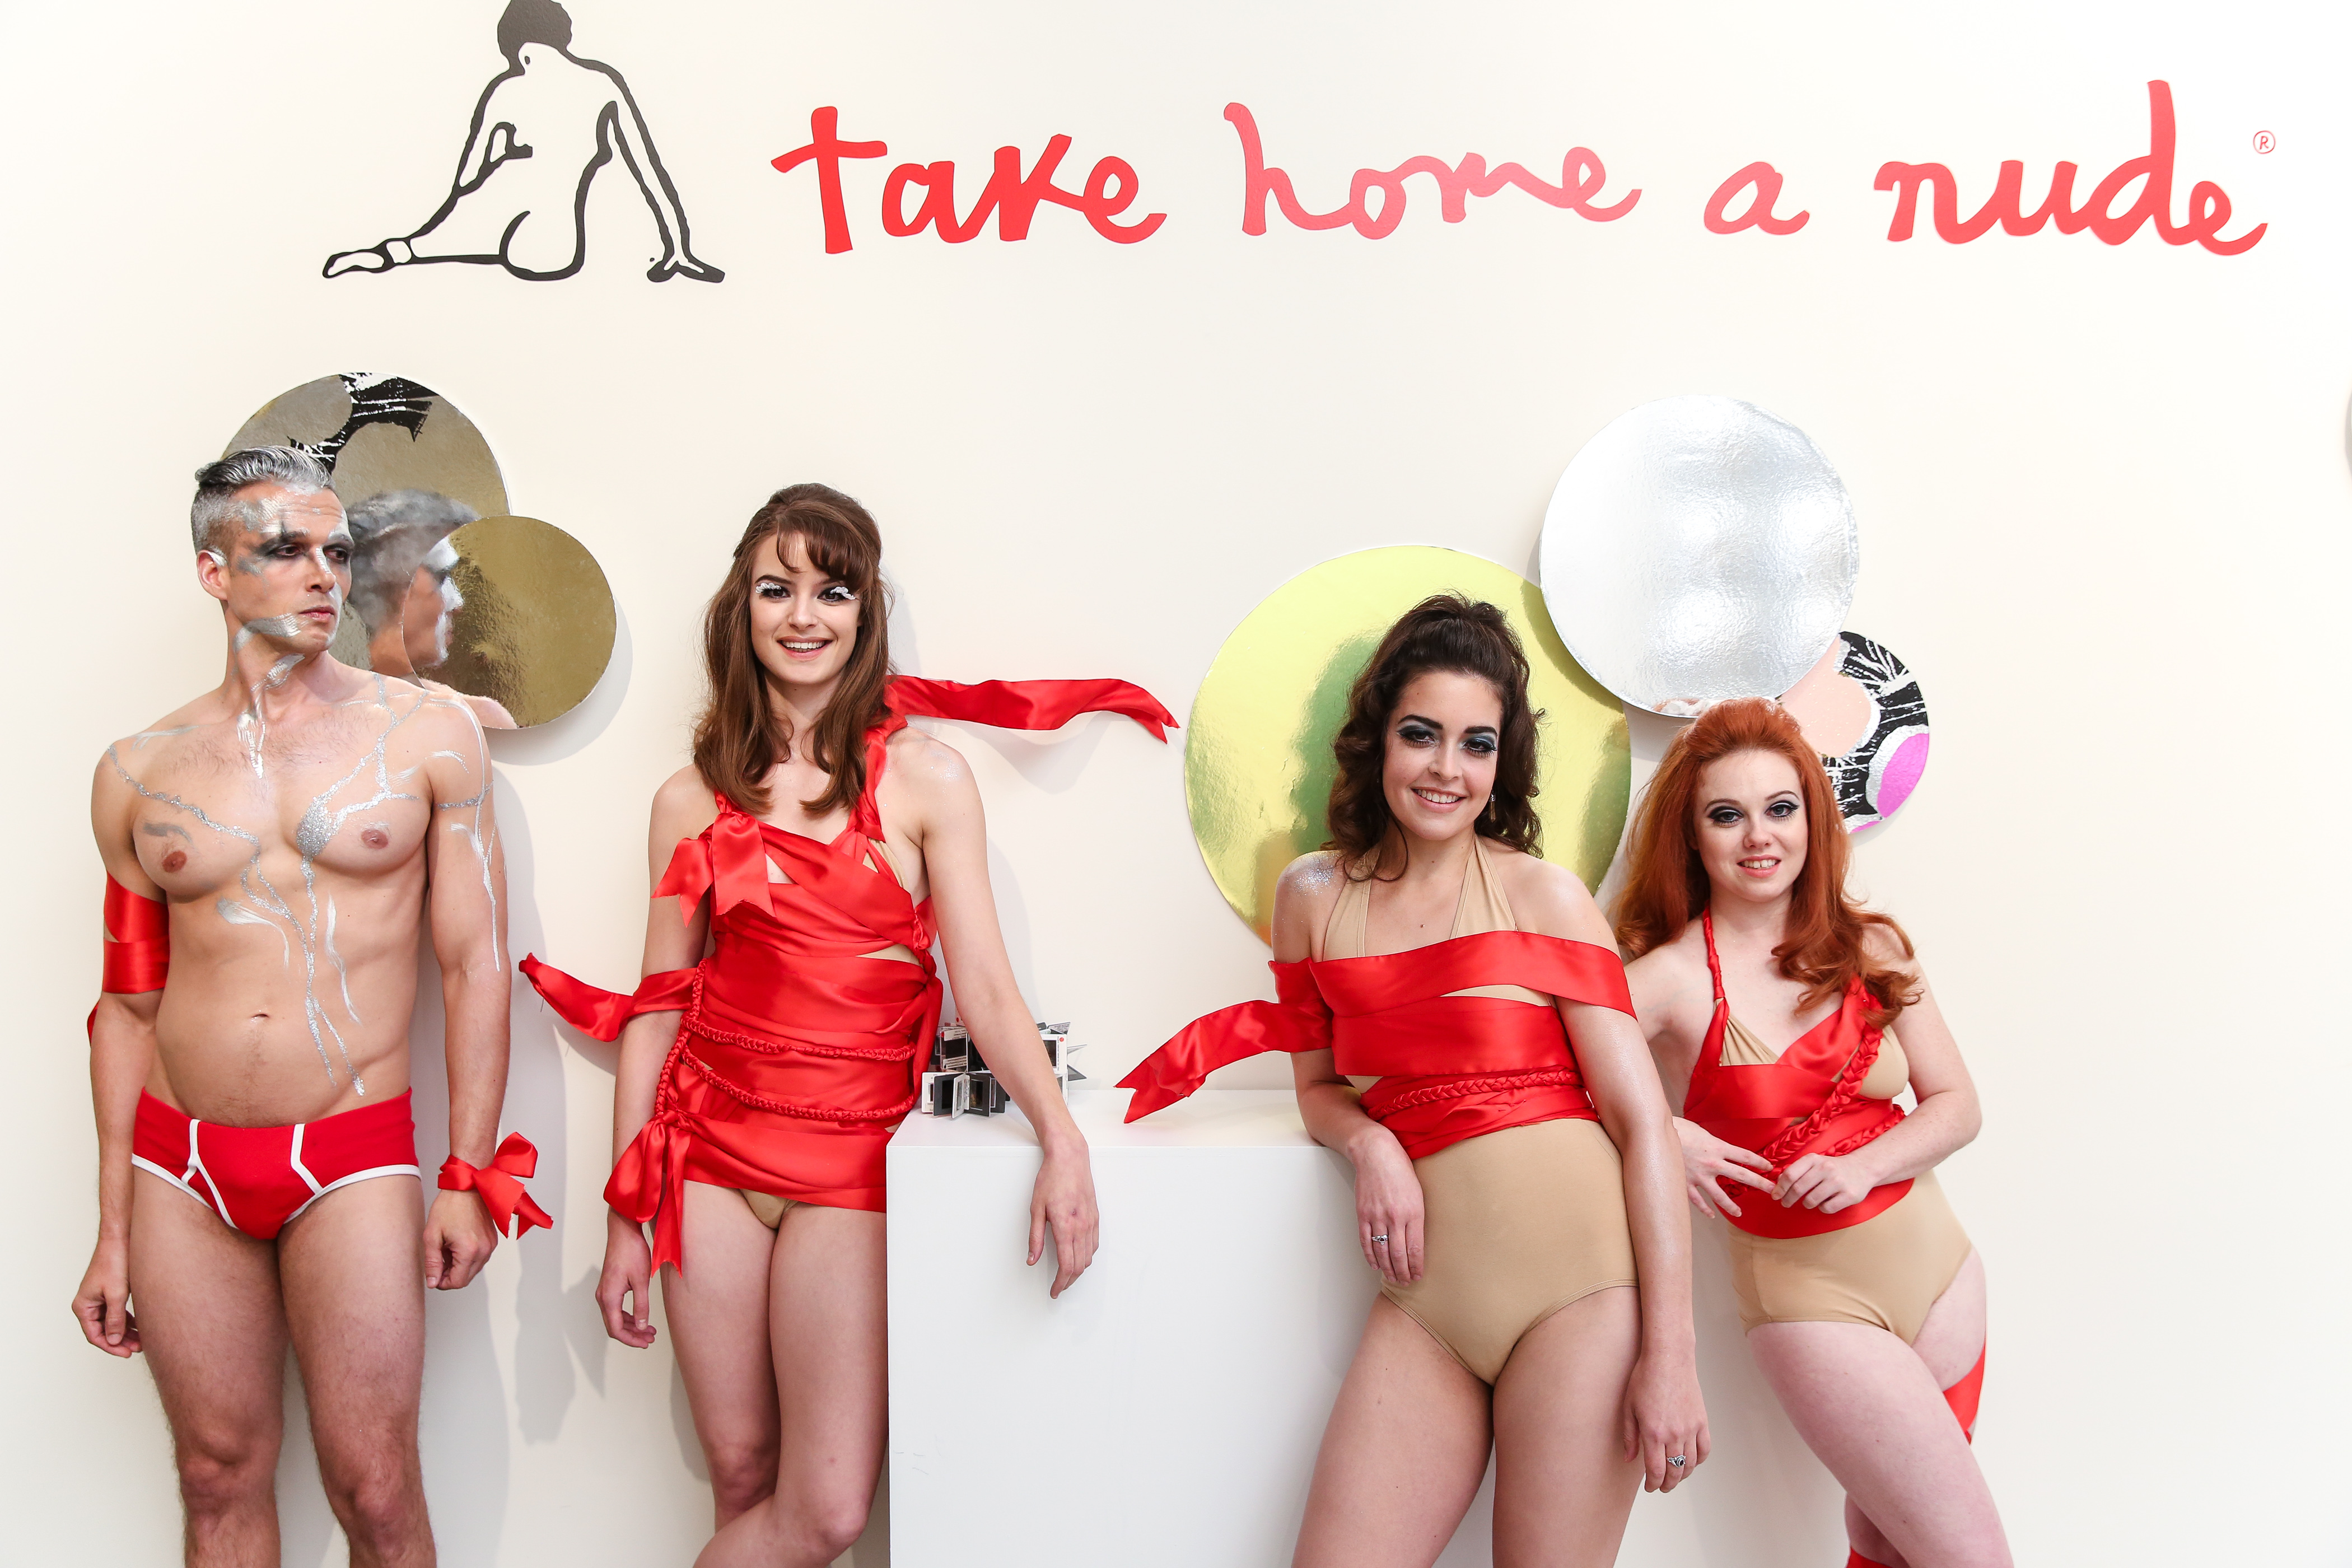 Scantily clad people at Take Home a Nude.